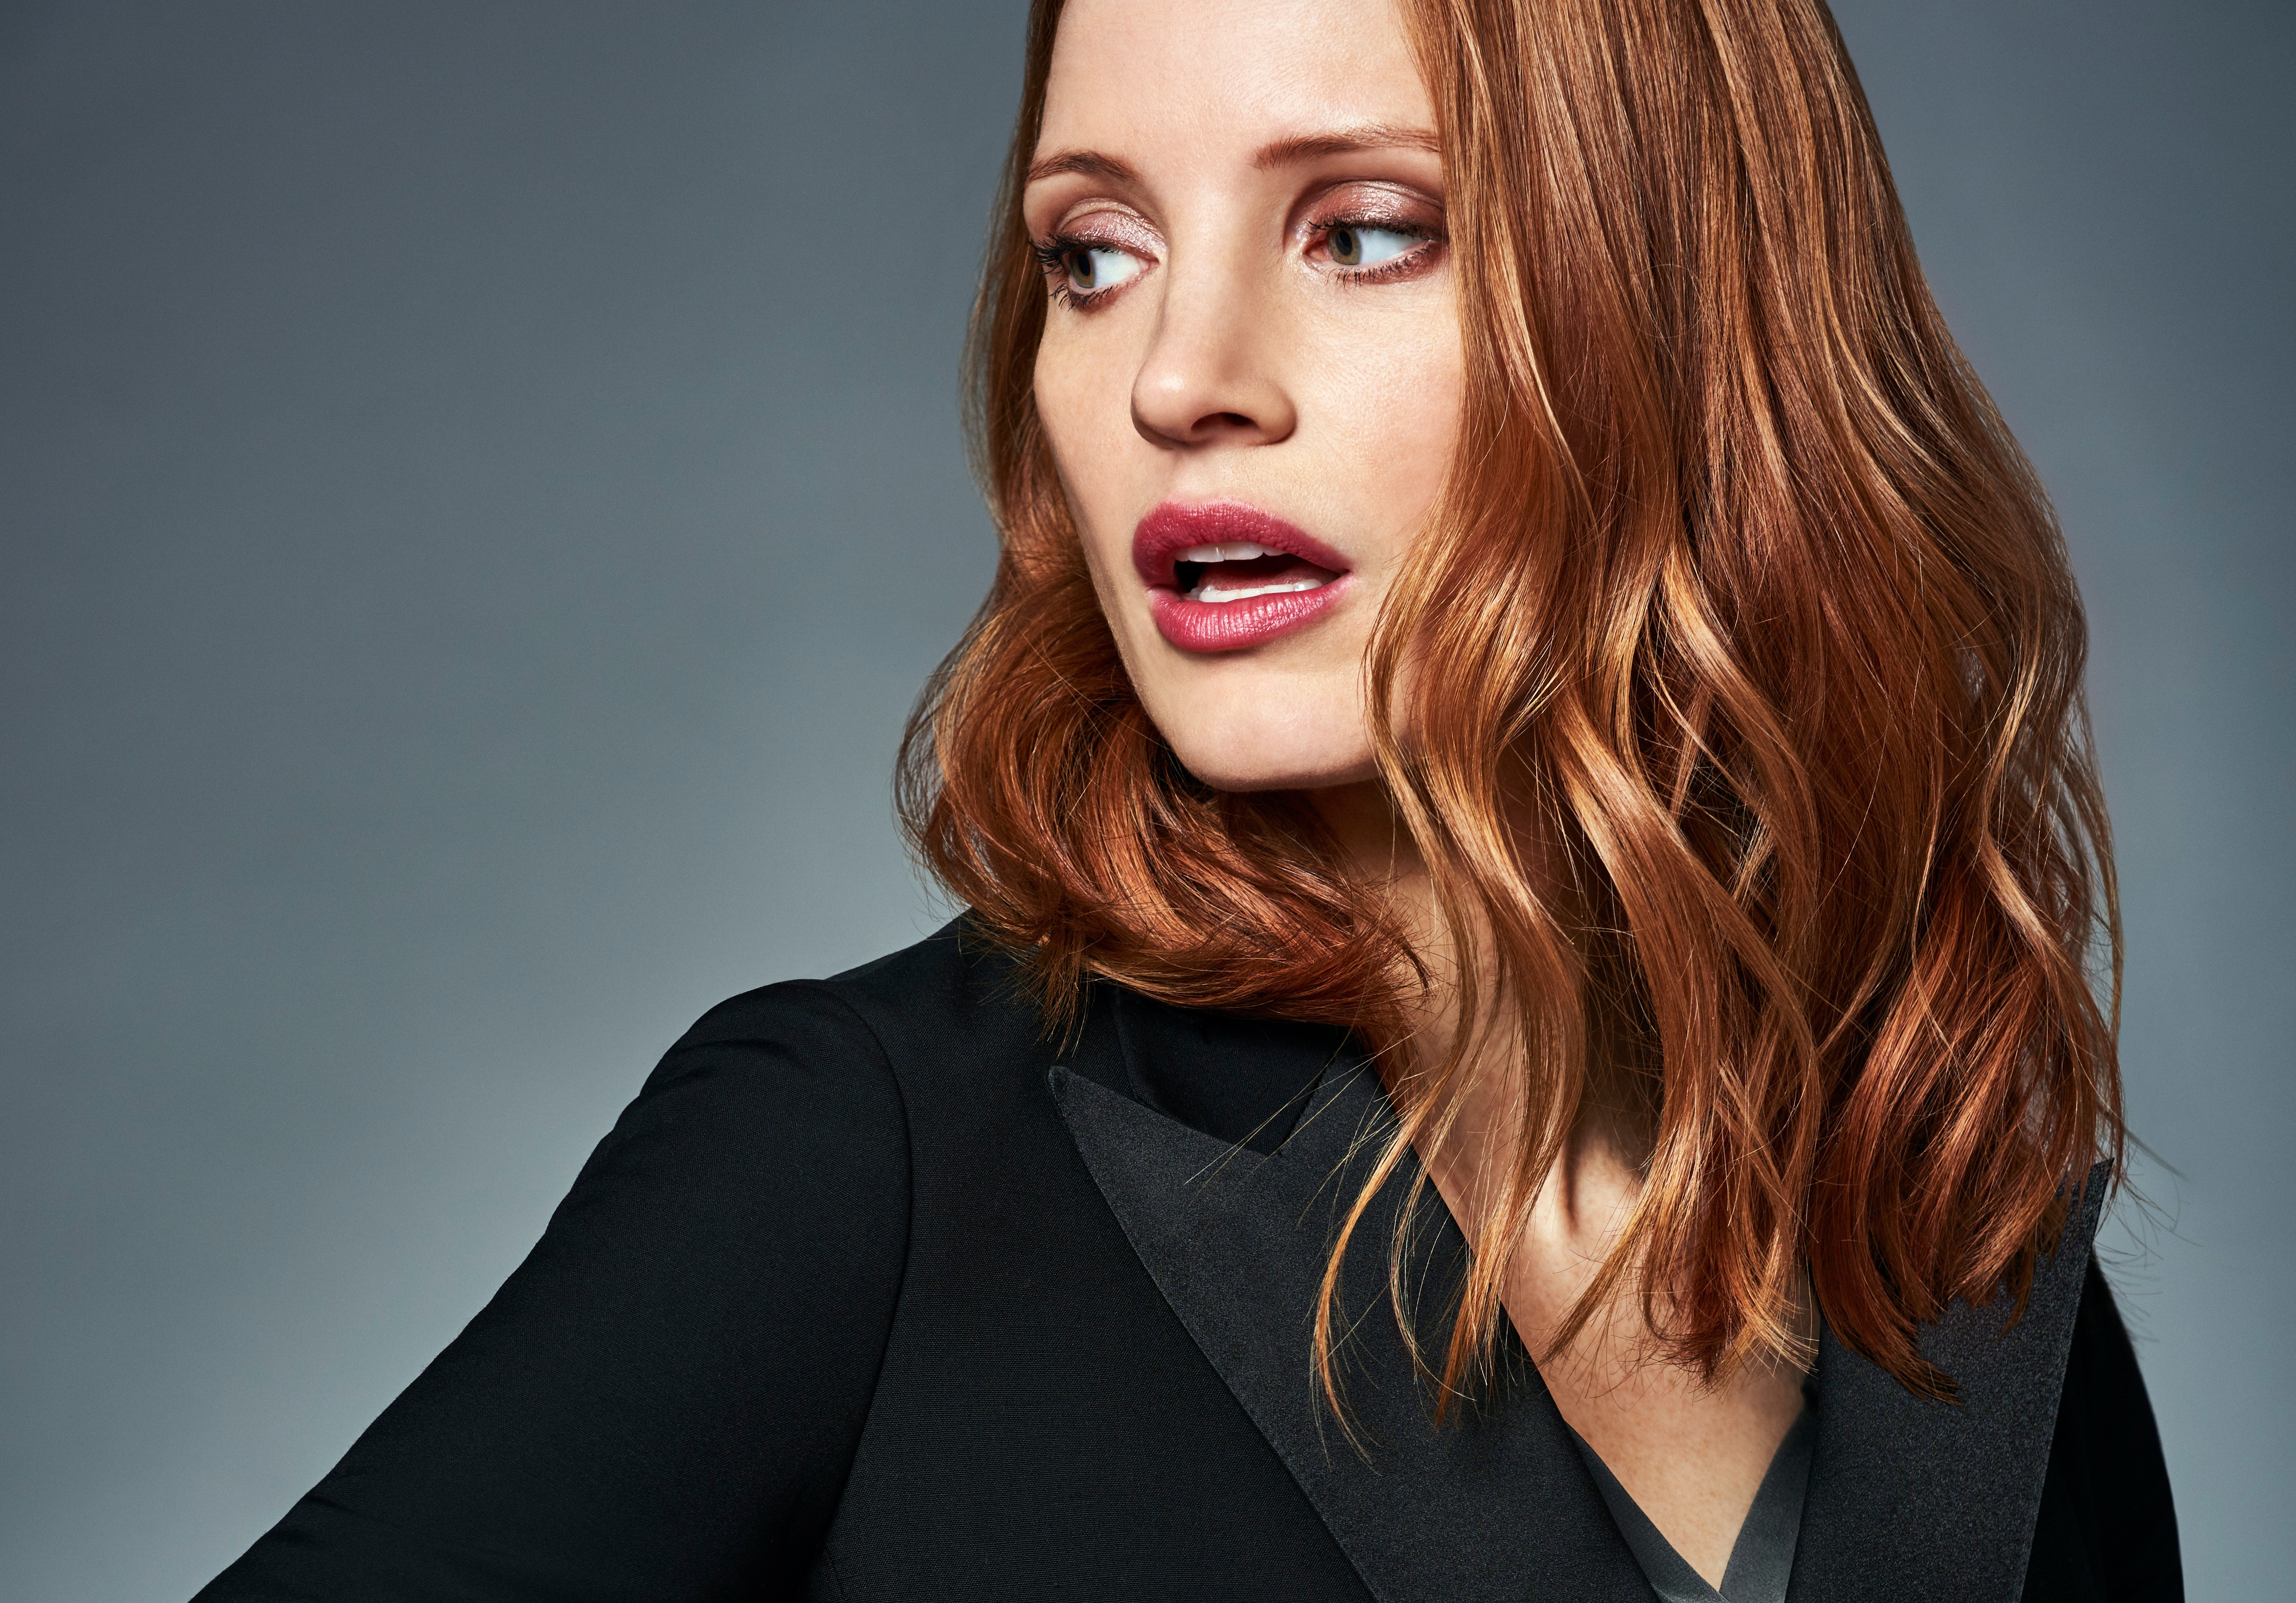 4814x3361 - Jessica Chastain Wallpapers 29